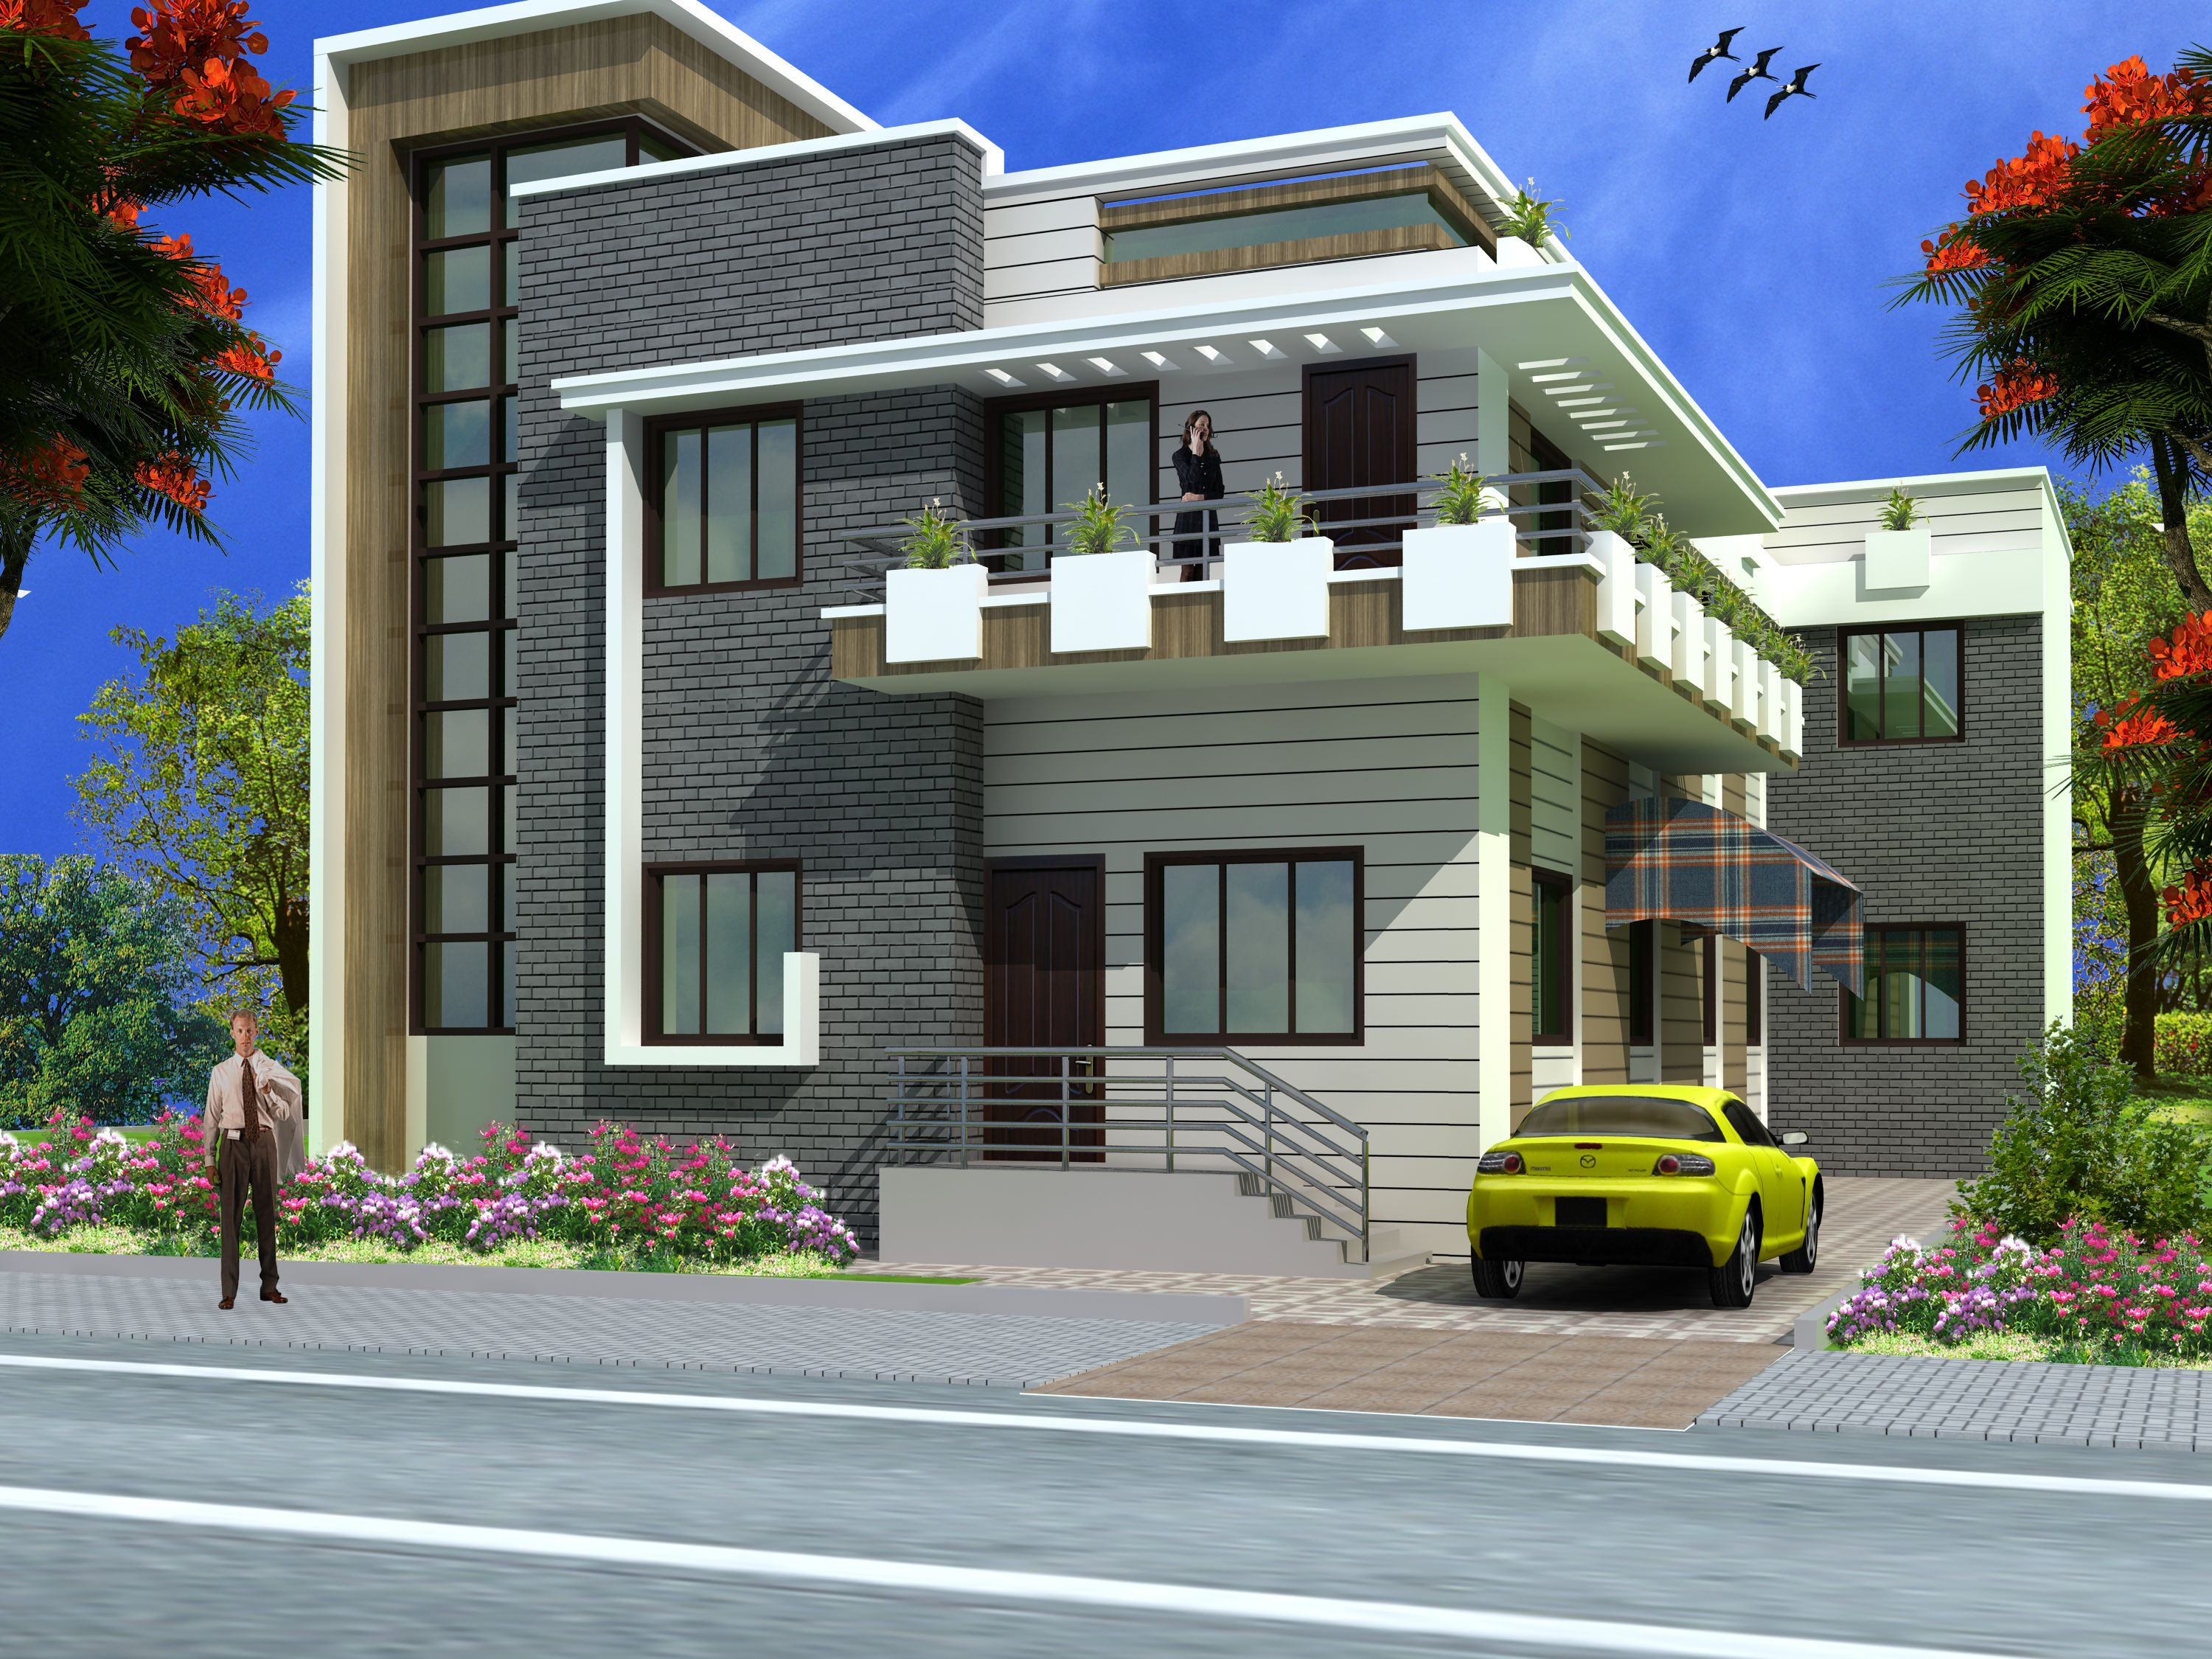 Modern duplex 2 floor house design click on this link for Front elevations of duplex houses